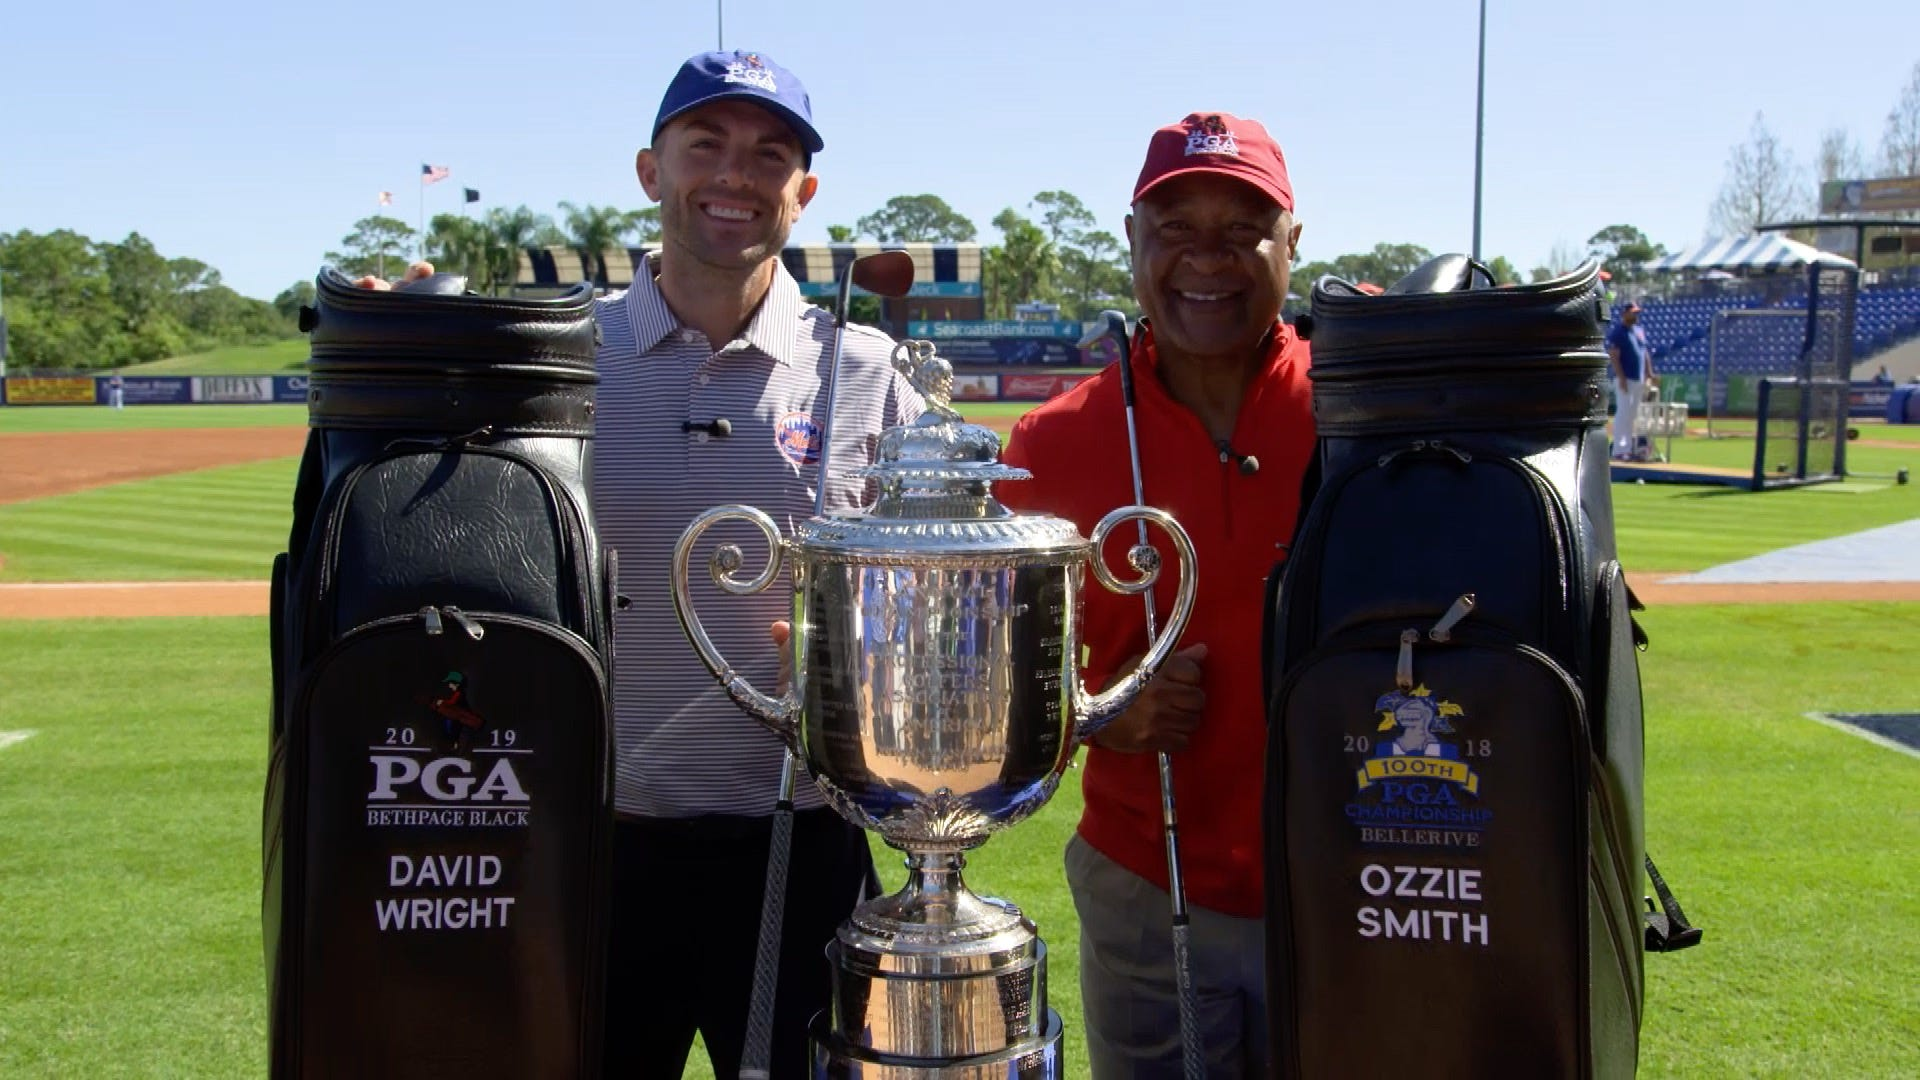 David Wright knew he had big shoes to fill taking over Ozzie's role at PGA Champ